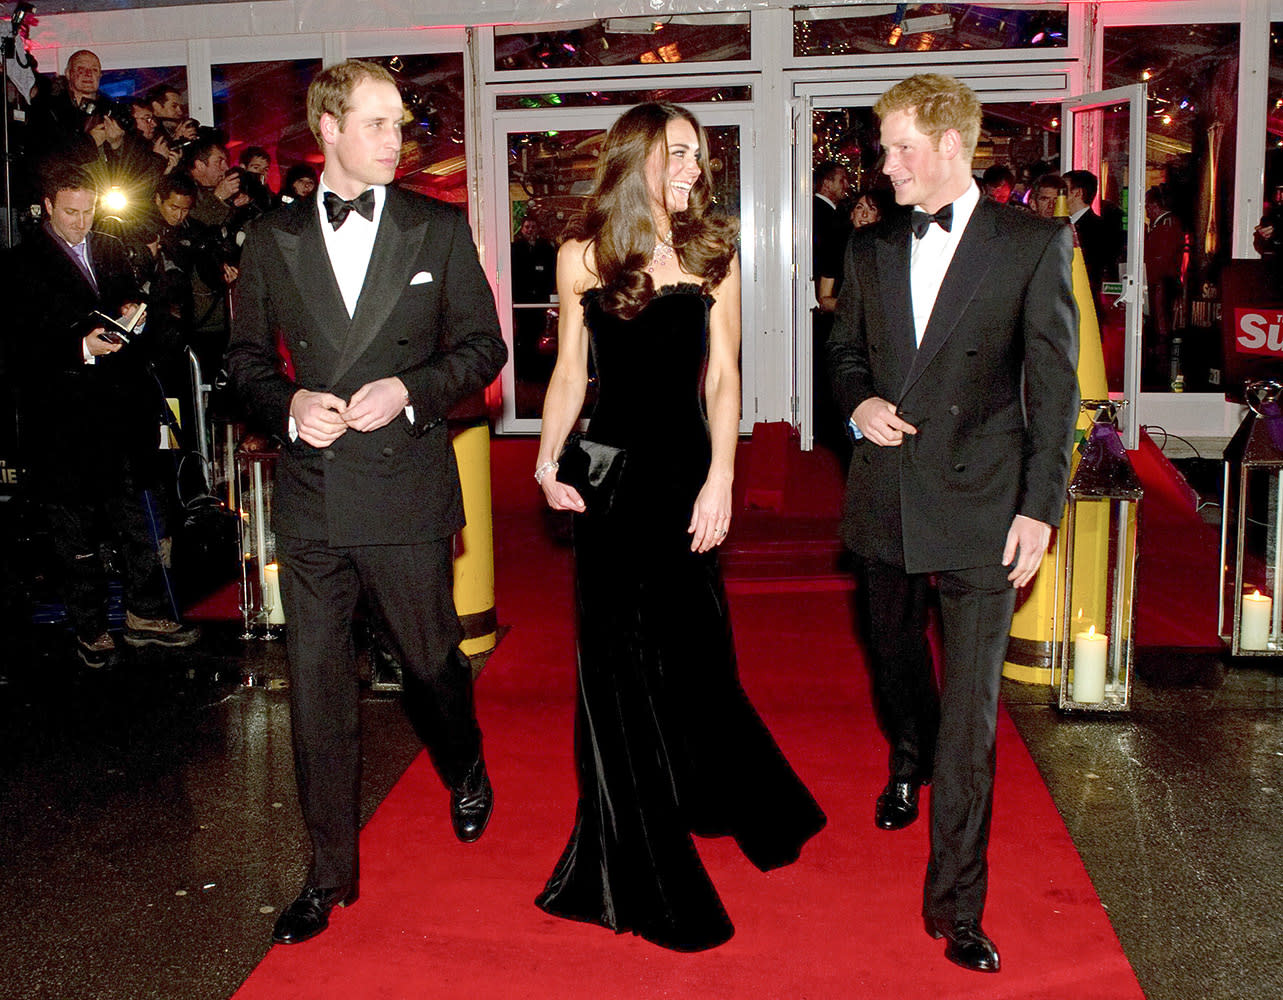 Prince William, Kate and Prince Harry arrive at the Imperial War Museum, all dressed in their black-tie best.